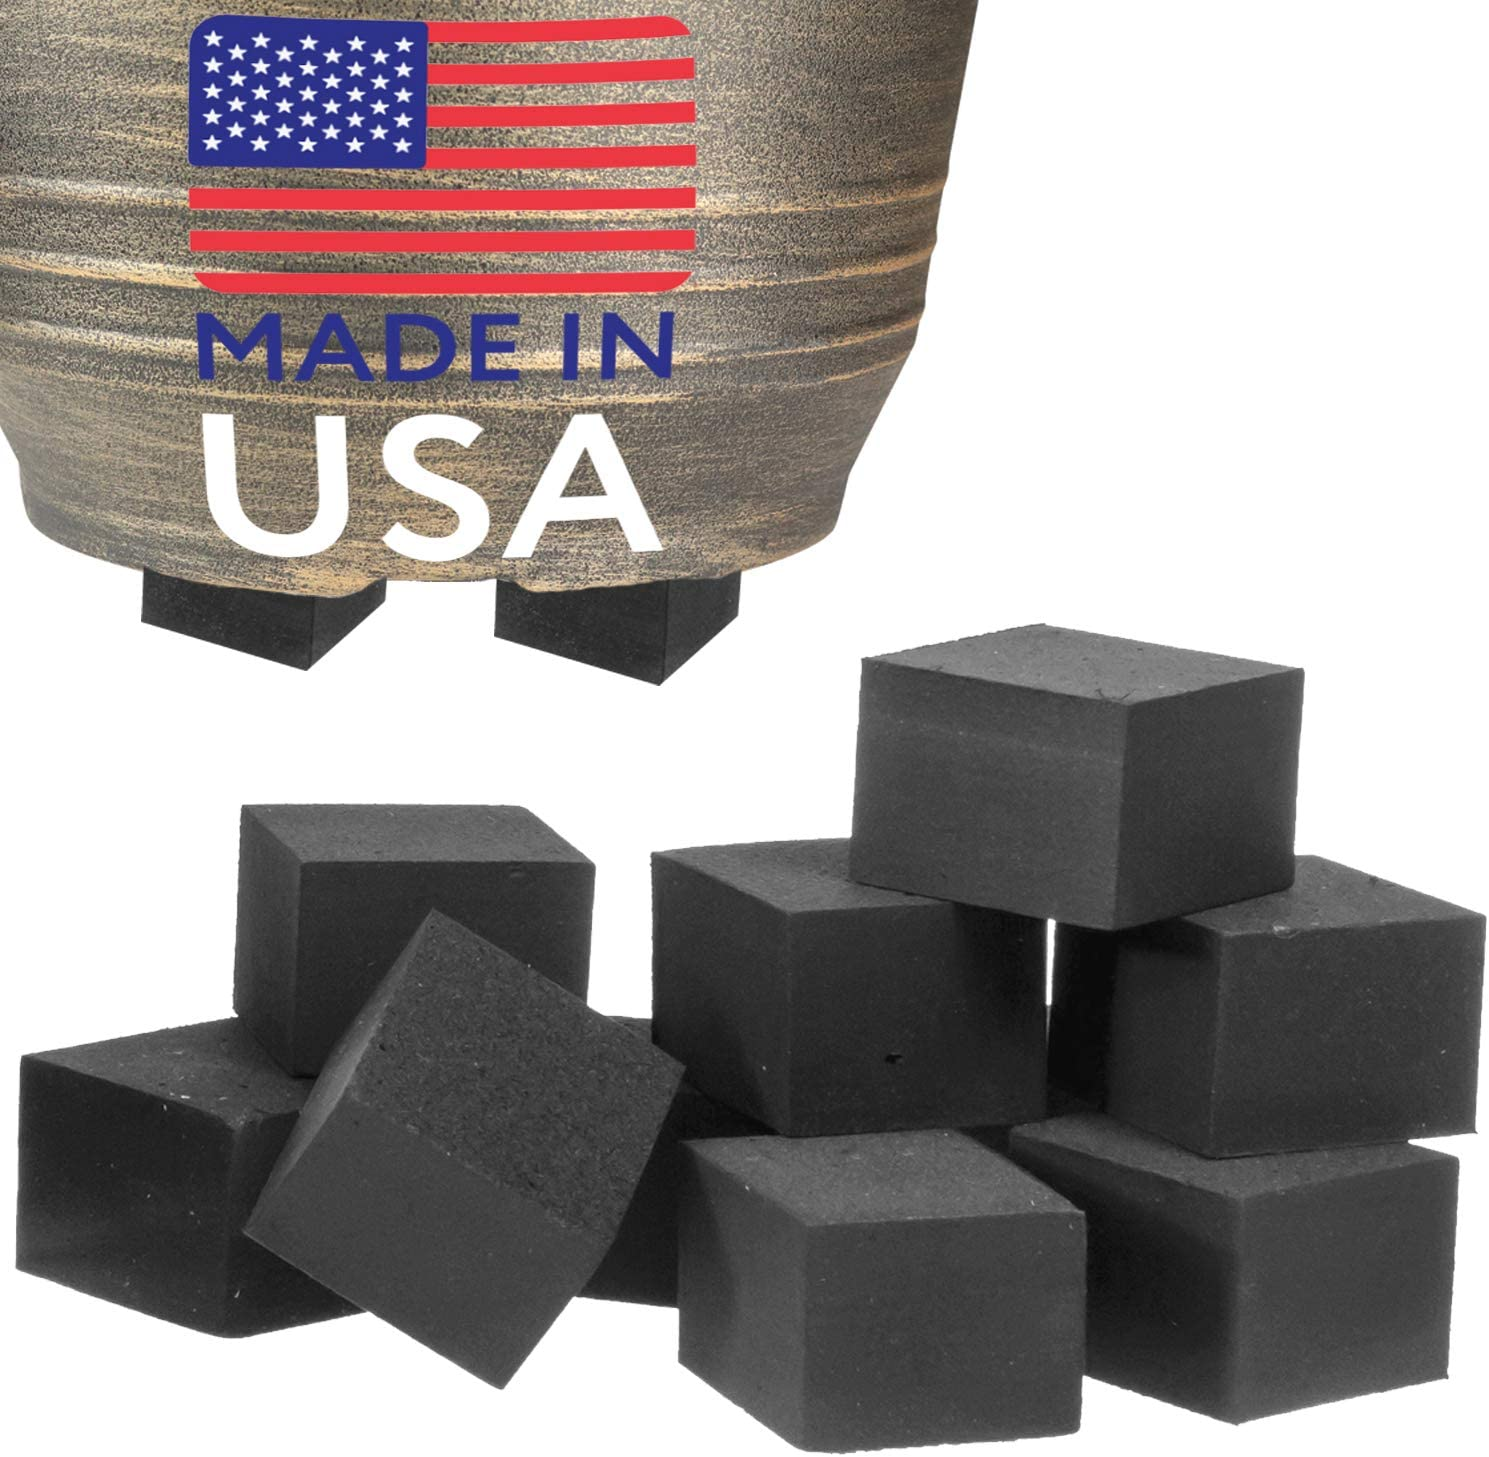 40 Pack Pot Feet for Outdoor Planters – Small Invisible Plant Risers for Small and Medium Sized Heavy Pots – 3 4 Elevators – Work Great On Patio and Deck Use – Made in USA